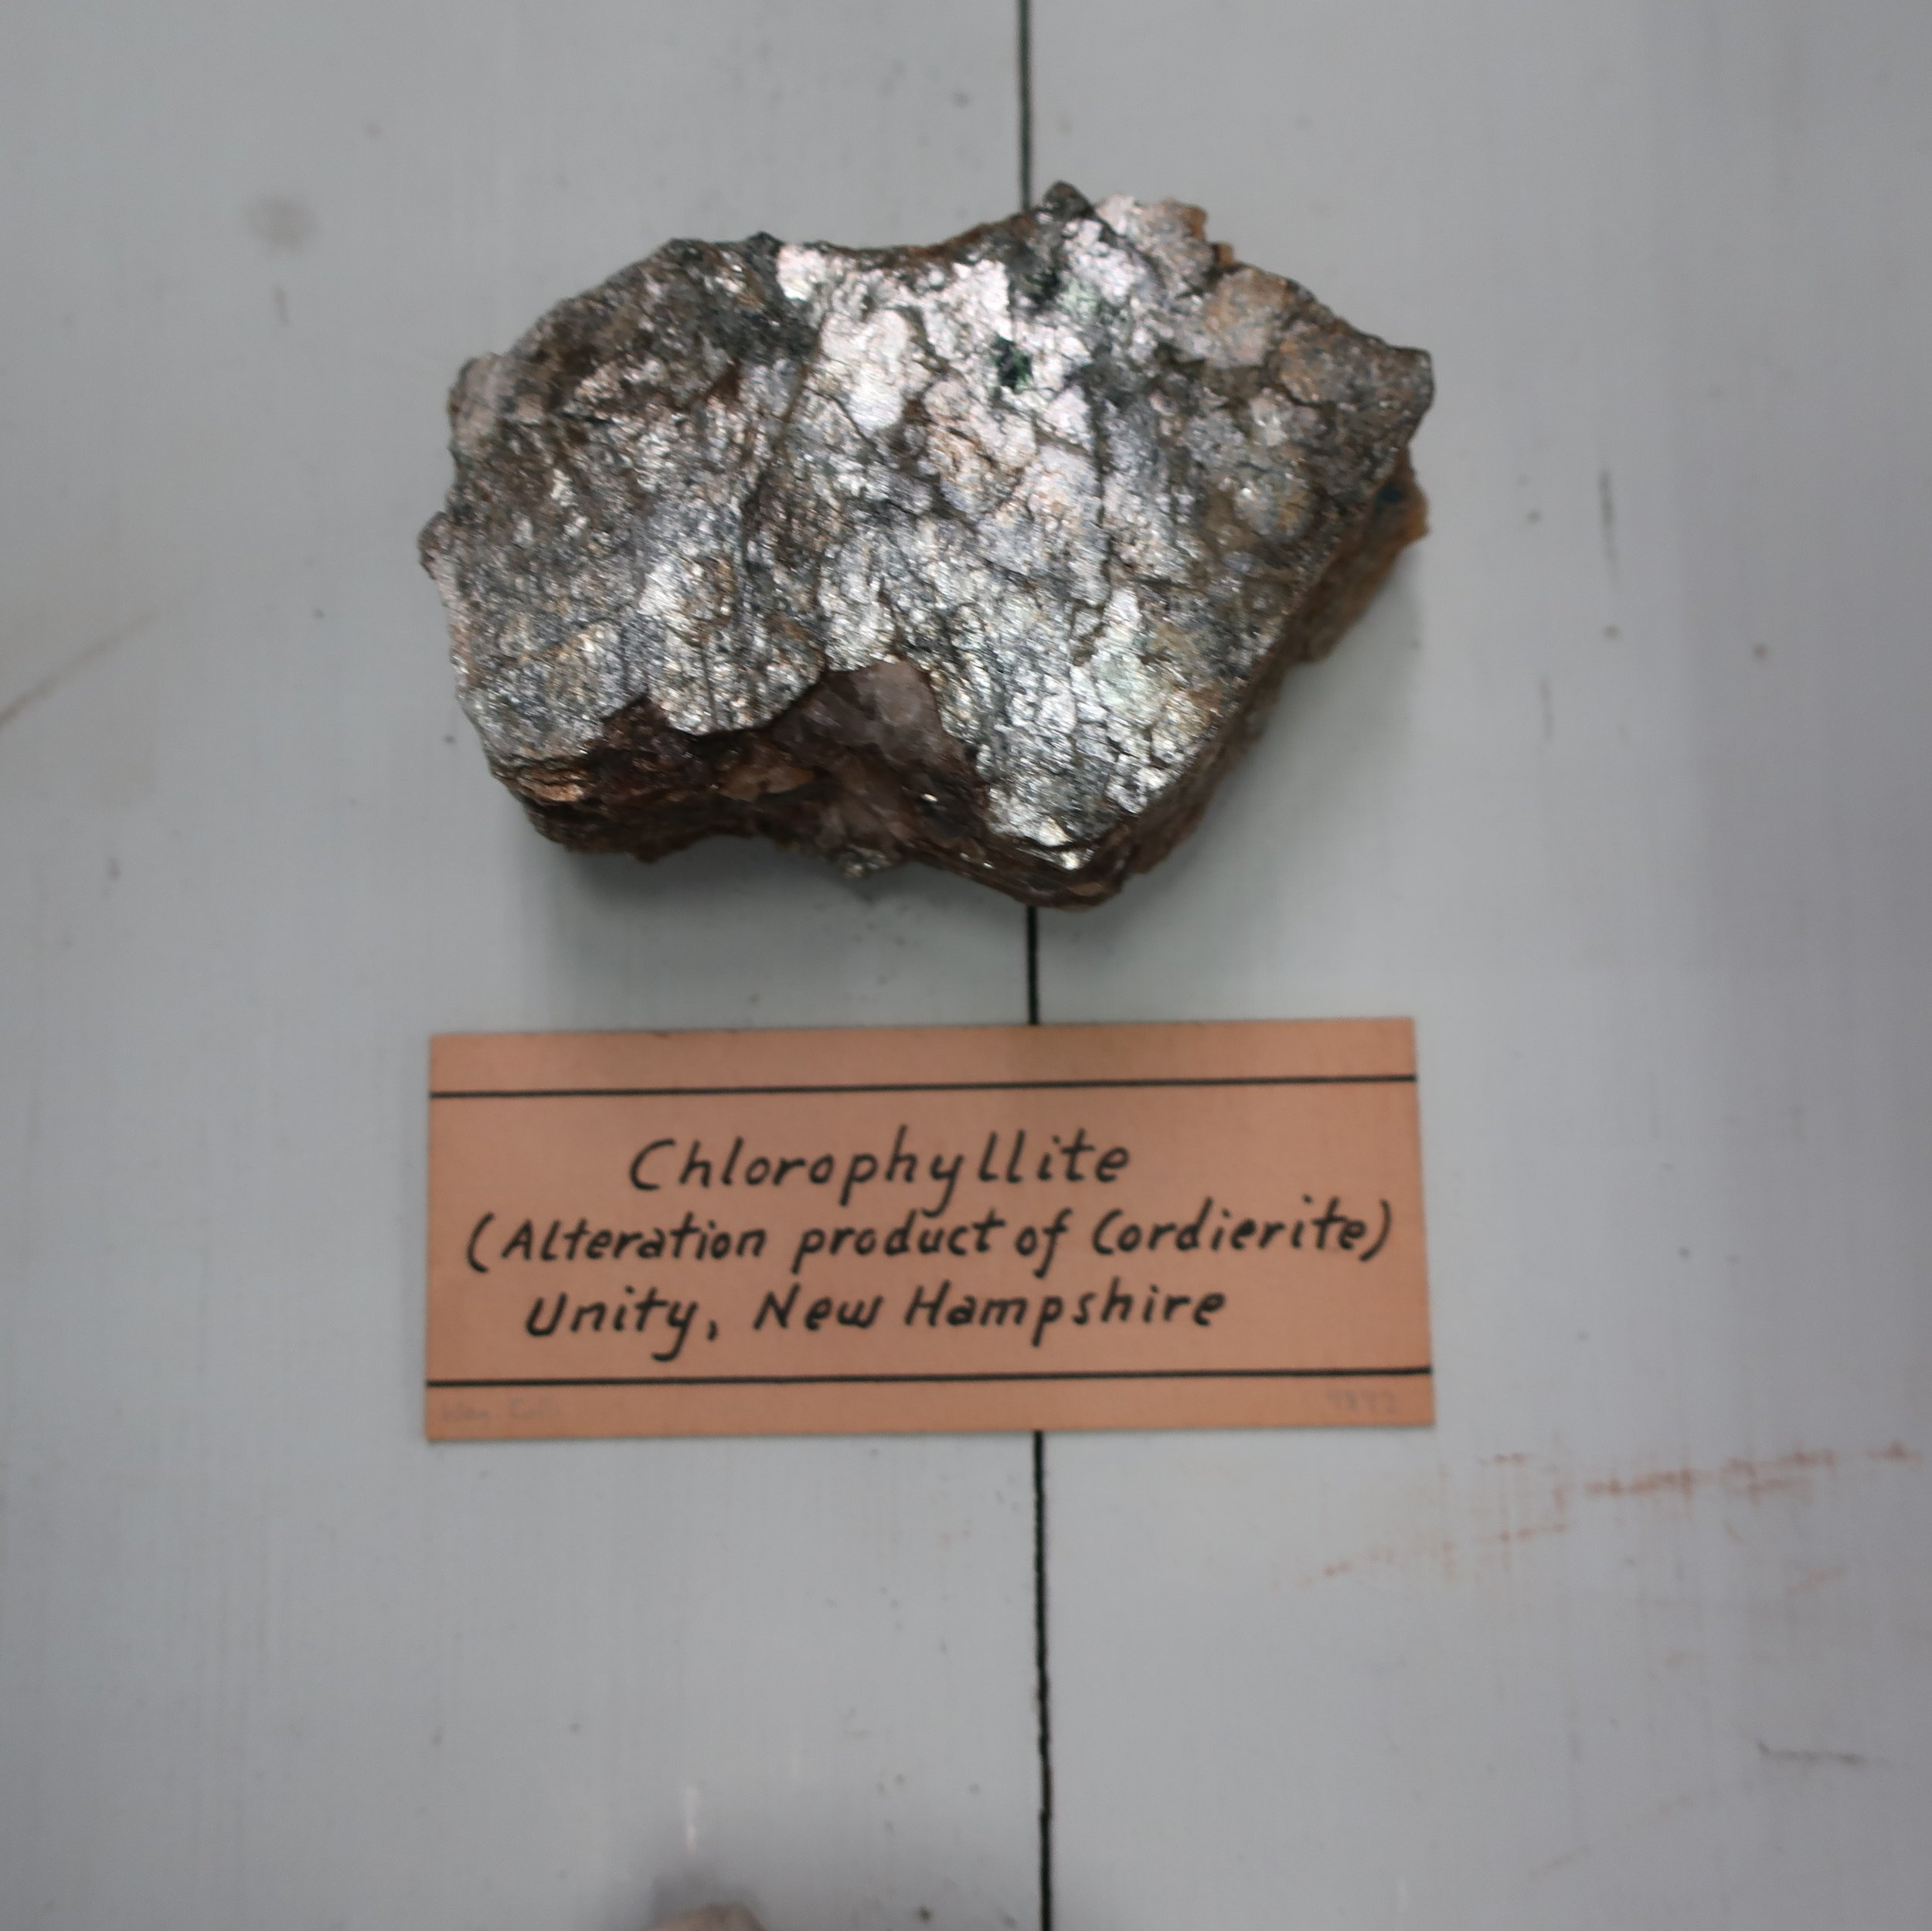 Chlorophillite  differs from [Diachoite] in hardness, Sp. Gr. and other physical properties, besides being a hydrated mineral. It has lately been found in the U.S. at Unity, New Hampshire, very plentifully crystallized. It consists of Silica 45, Alumina 30, Magnesia 9, Iron 5, Water 10. Sp Gr 2.07. Colour green, greenish brown, or dark olive brown. It occurs crystallized in six sided prisms. The specemens from Unity have the appearance of large foliated masses, they are divisible, the natural joints being filled by a magnesian mica, and imparts to them a talcy lustre. BB it is infusible alone.